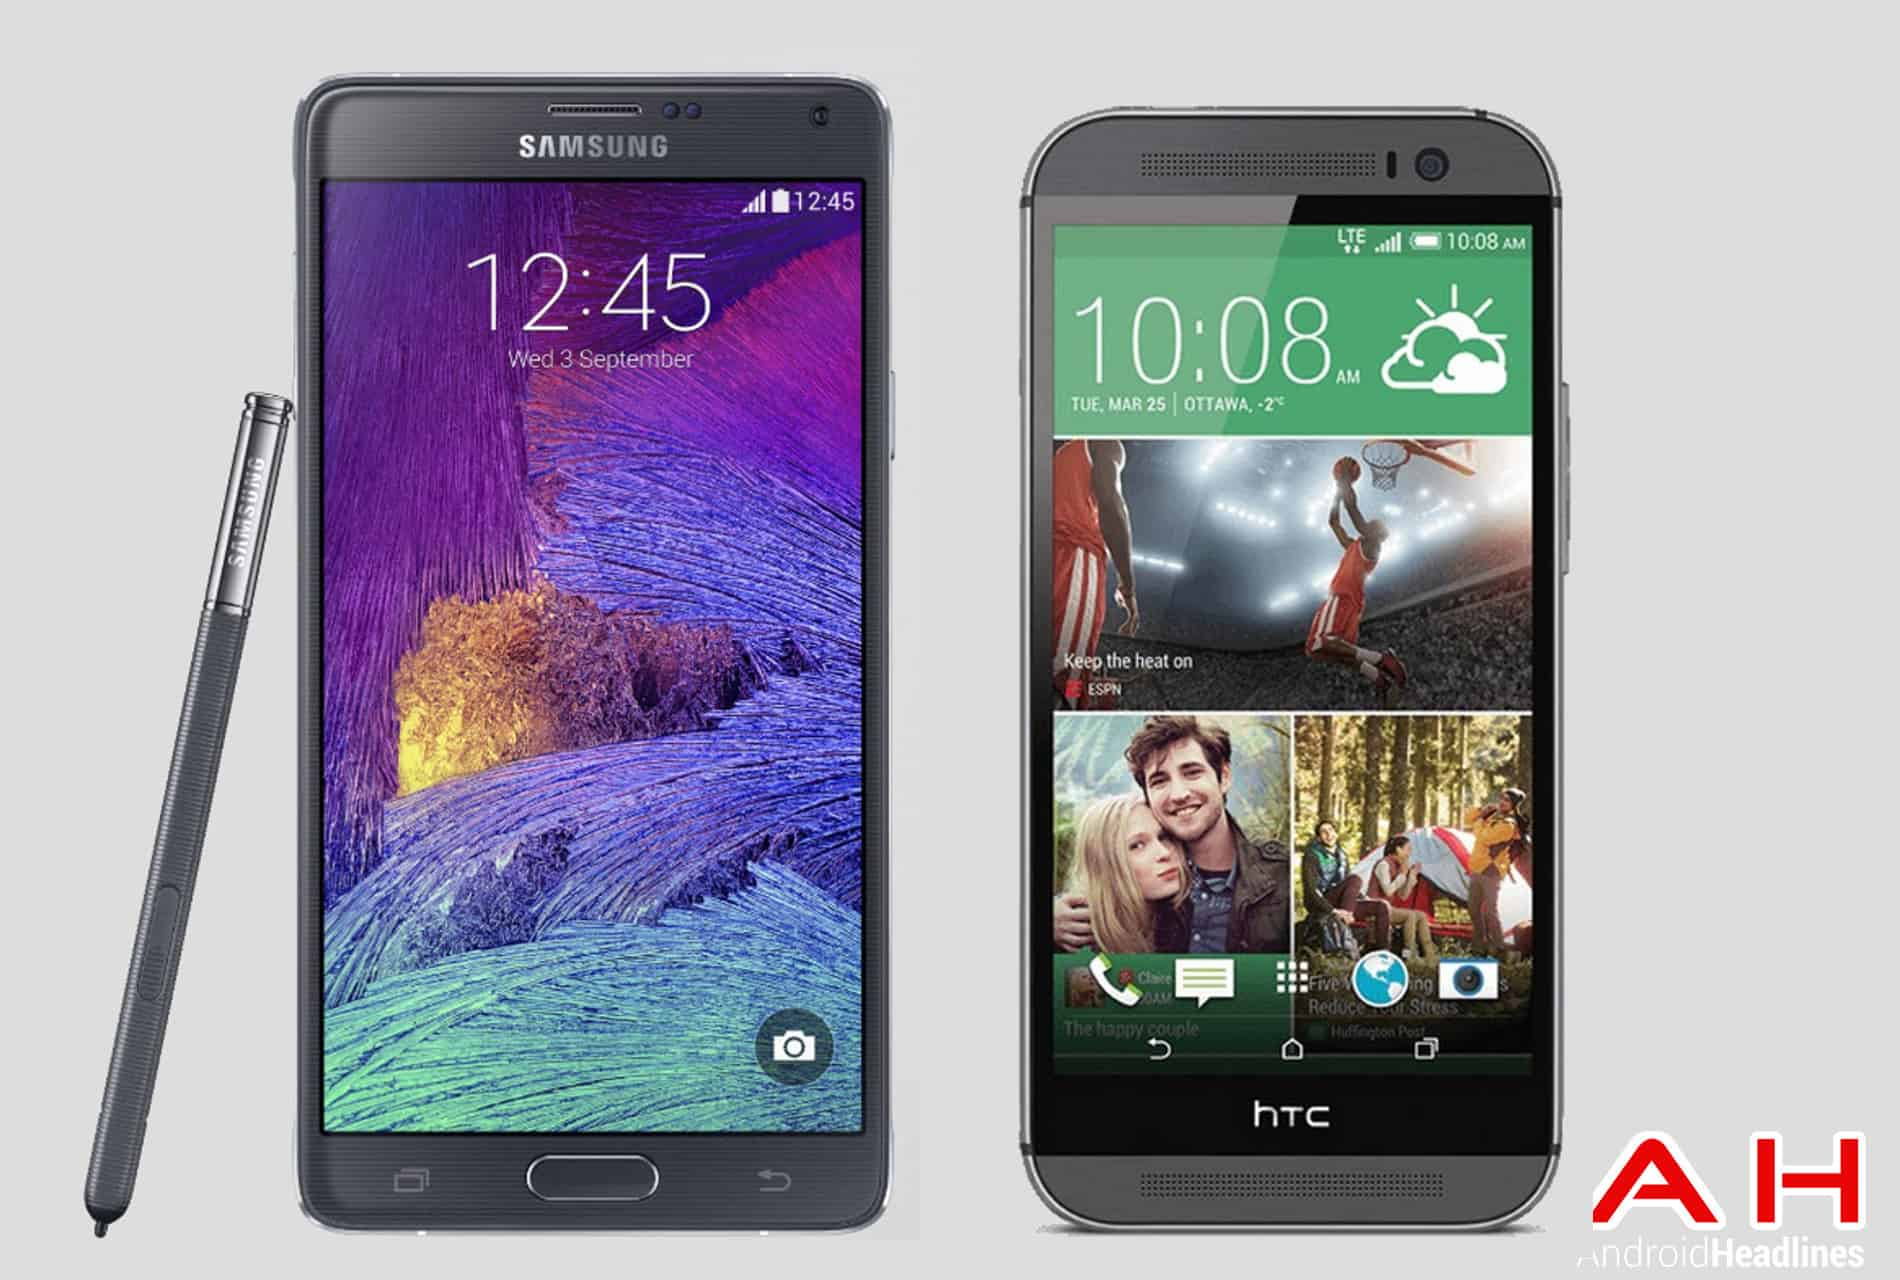 htc 4. phone comparisons: samsung galaxy note 4 vs htc one m8 | androidheadlines.com htc android headlines